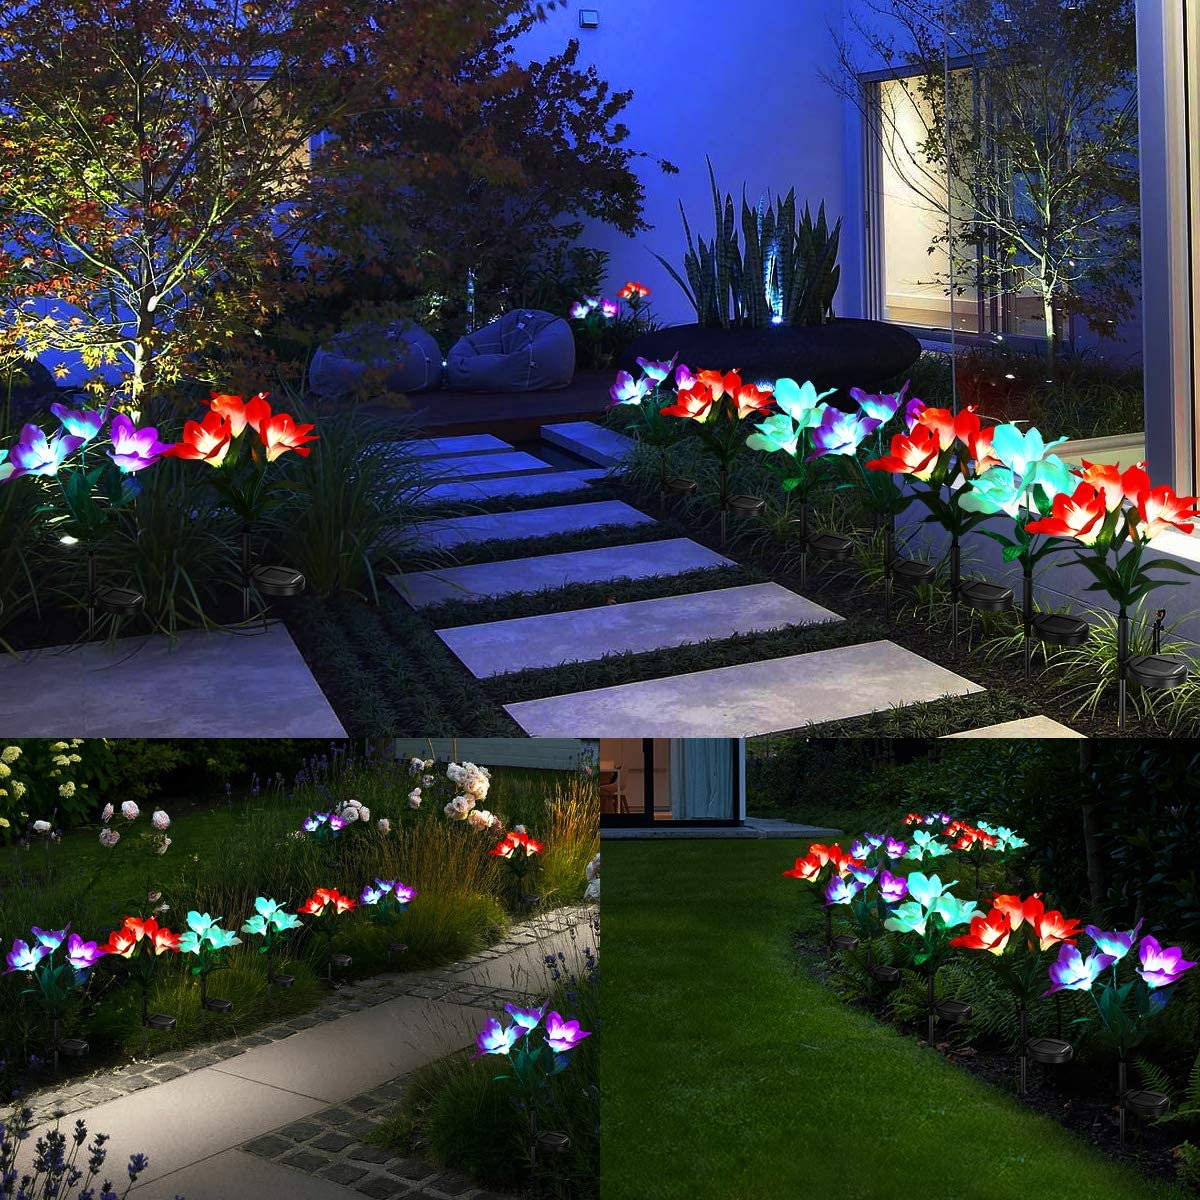 URPOWER Solar Lights Outdoor Solar Pathway Lights Waterproof Solar Garden Lights Auto ON/Off